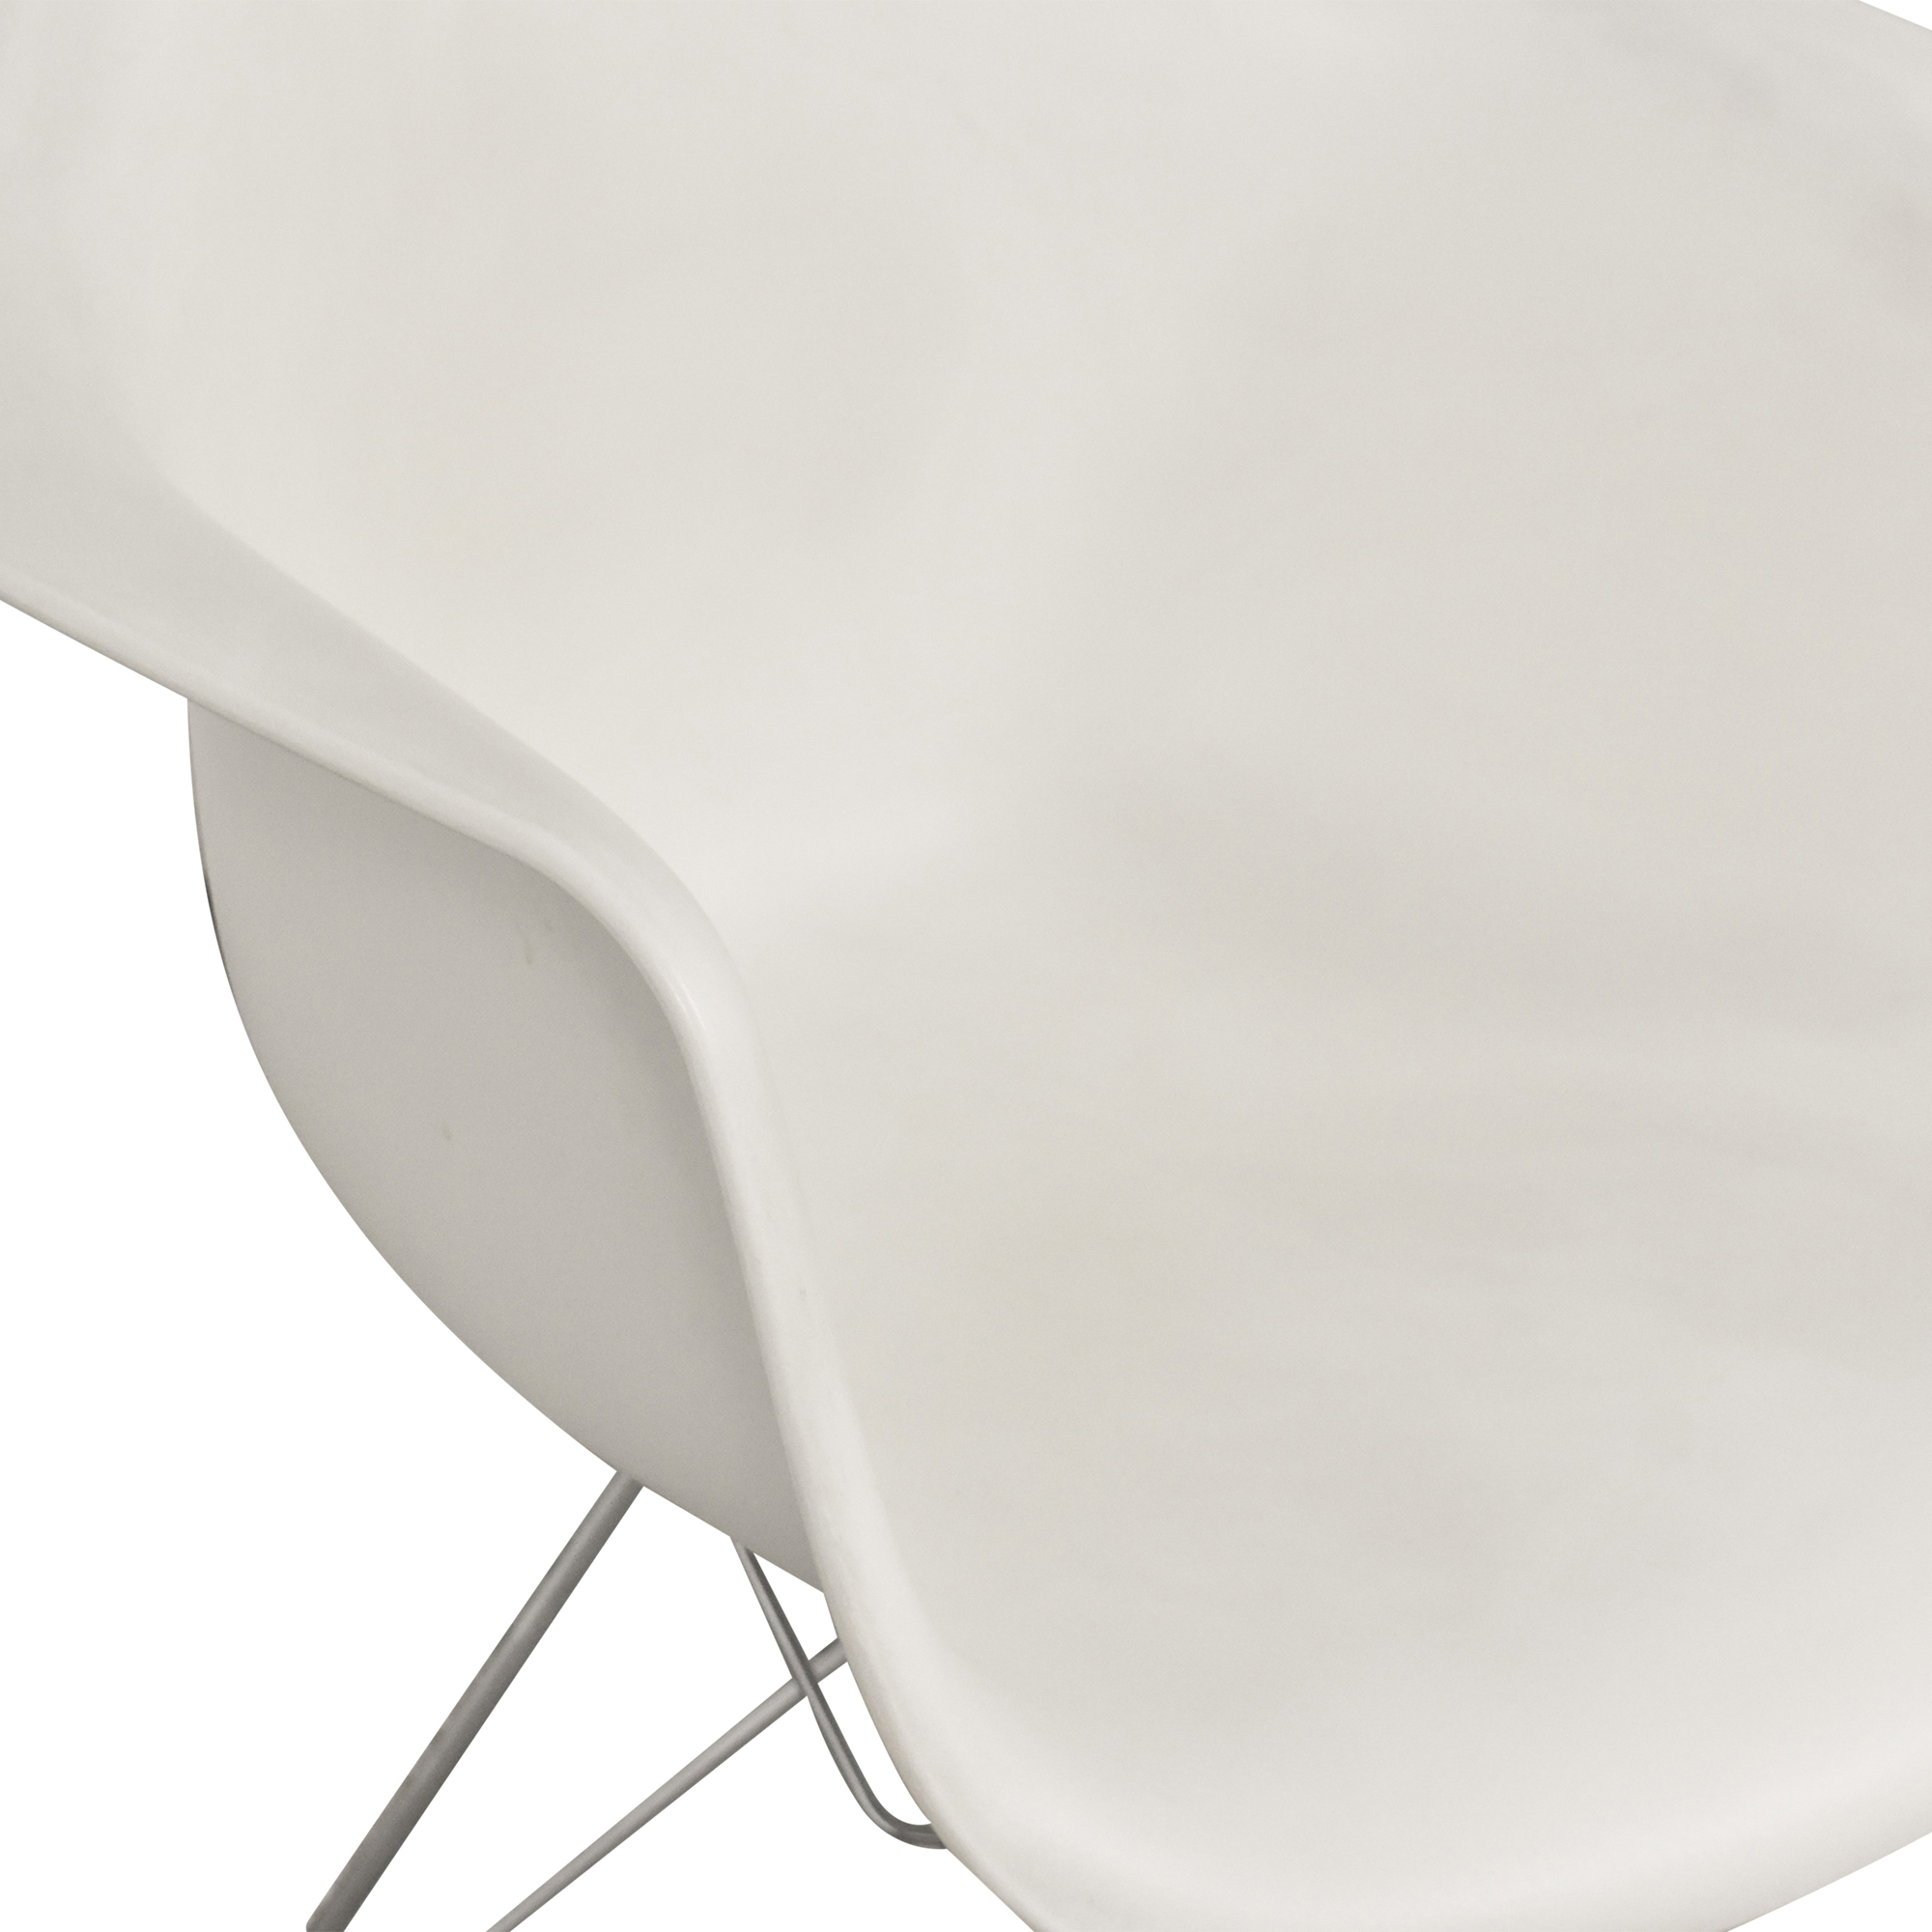 Herman Miller Herman Miller Eames Molded Arm Chairs ma